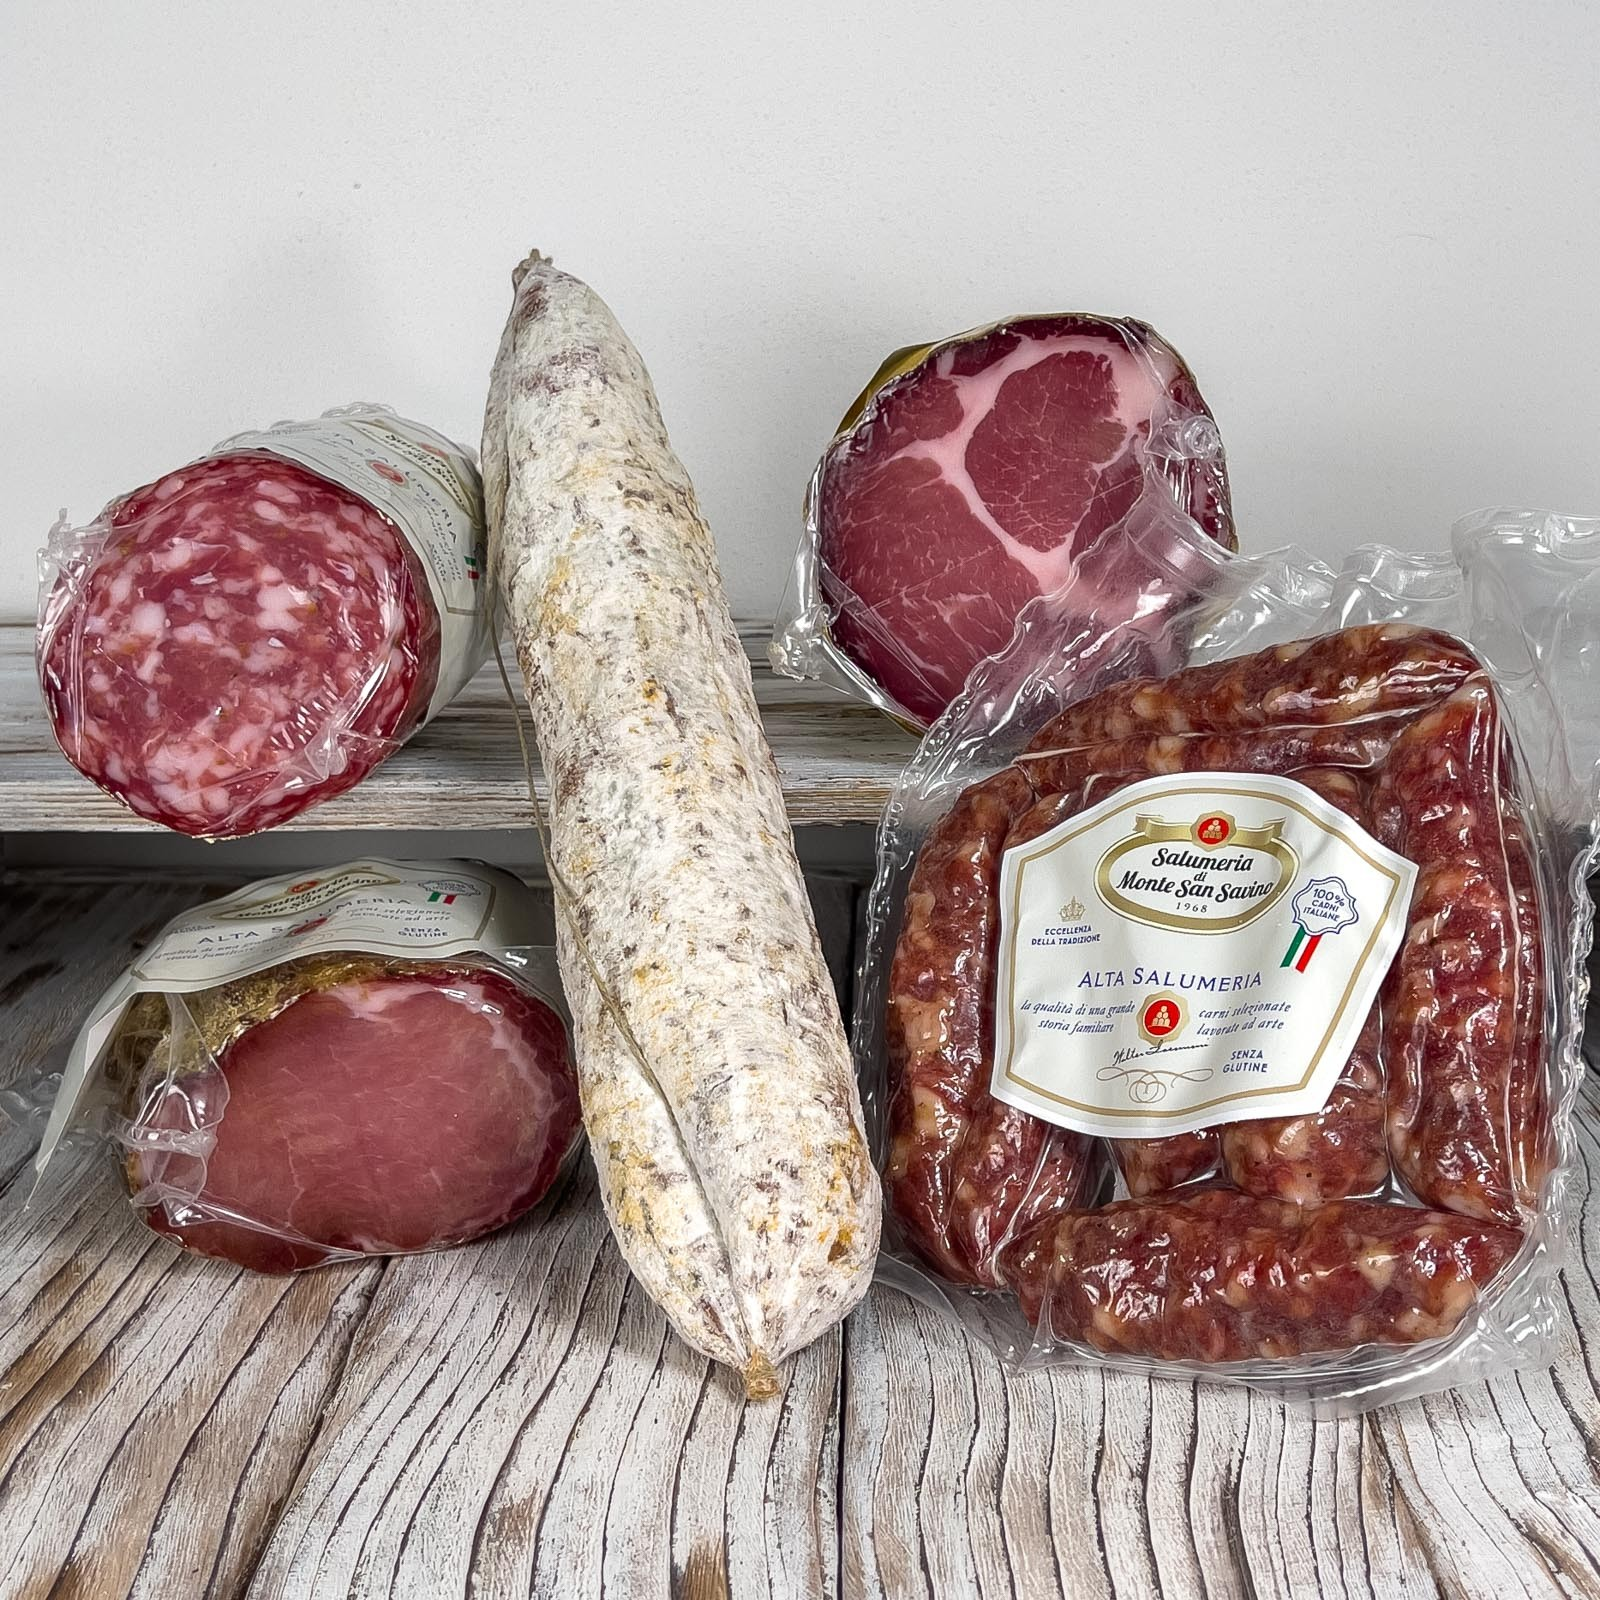 """The Tasting Box - """"Salumi Toscani"""" is made up of a selection of products for a total of about 2.4 kg. This box is perfect for composing a platter of appetizers with high quality Tuscan cold cuts."""